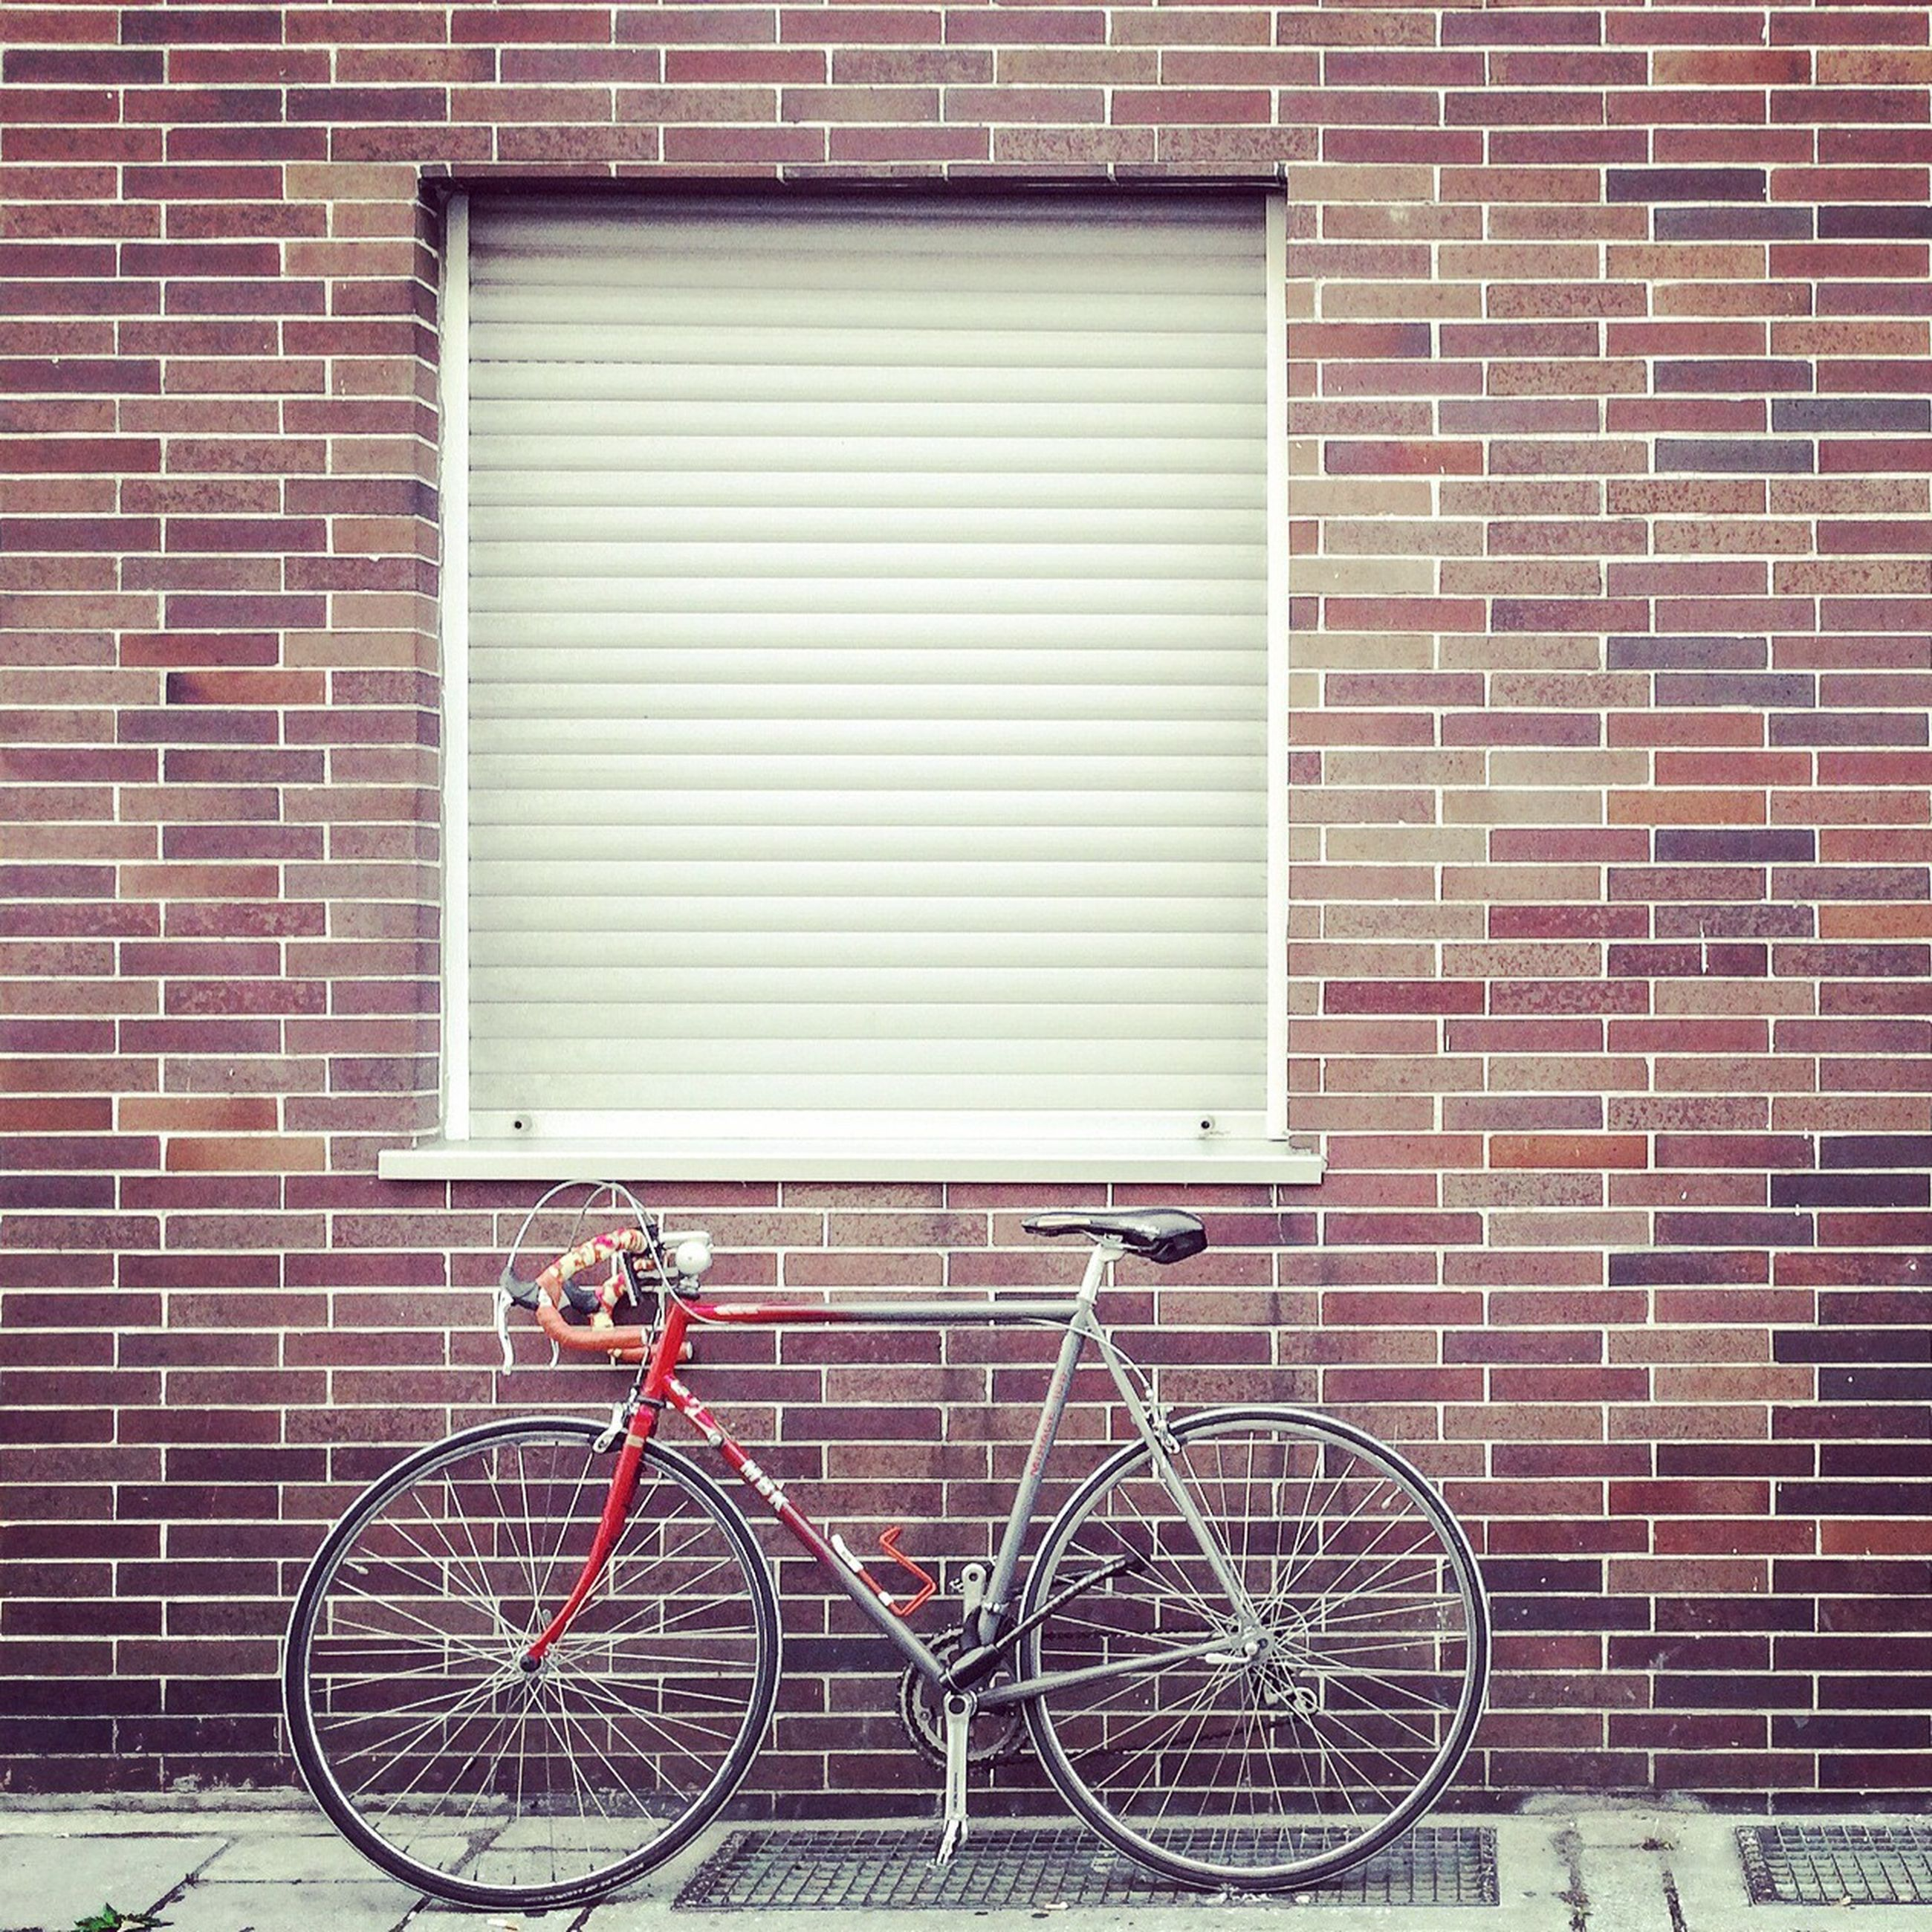 bicycle, building exterior, architecture, built structure, brick wall, stationary, wall - building feature, parked, transportation, parking, mode of transport, land vehicle, window, wall, metal, house, day, building, no people, leaning